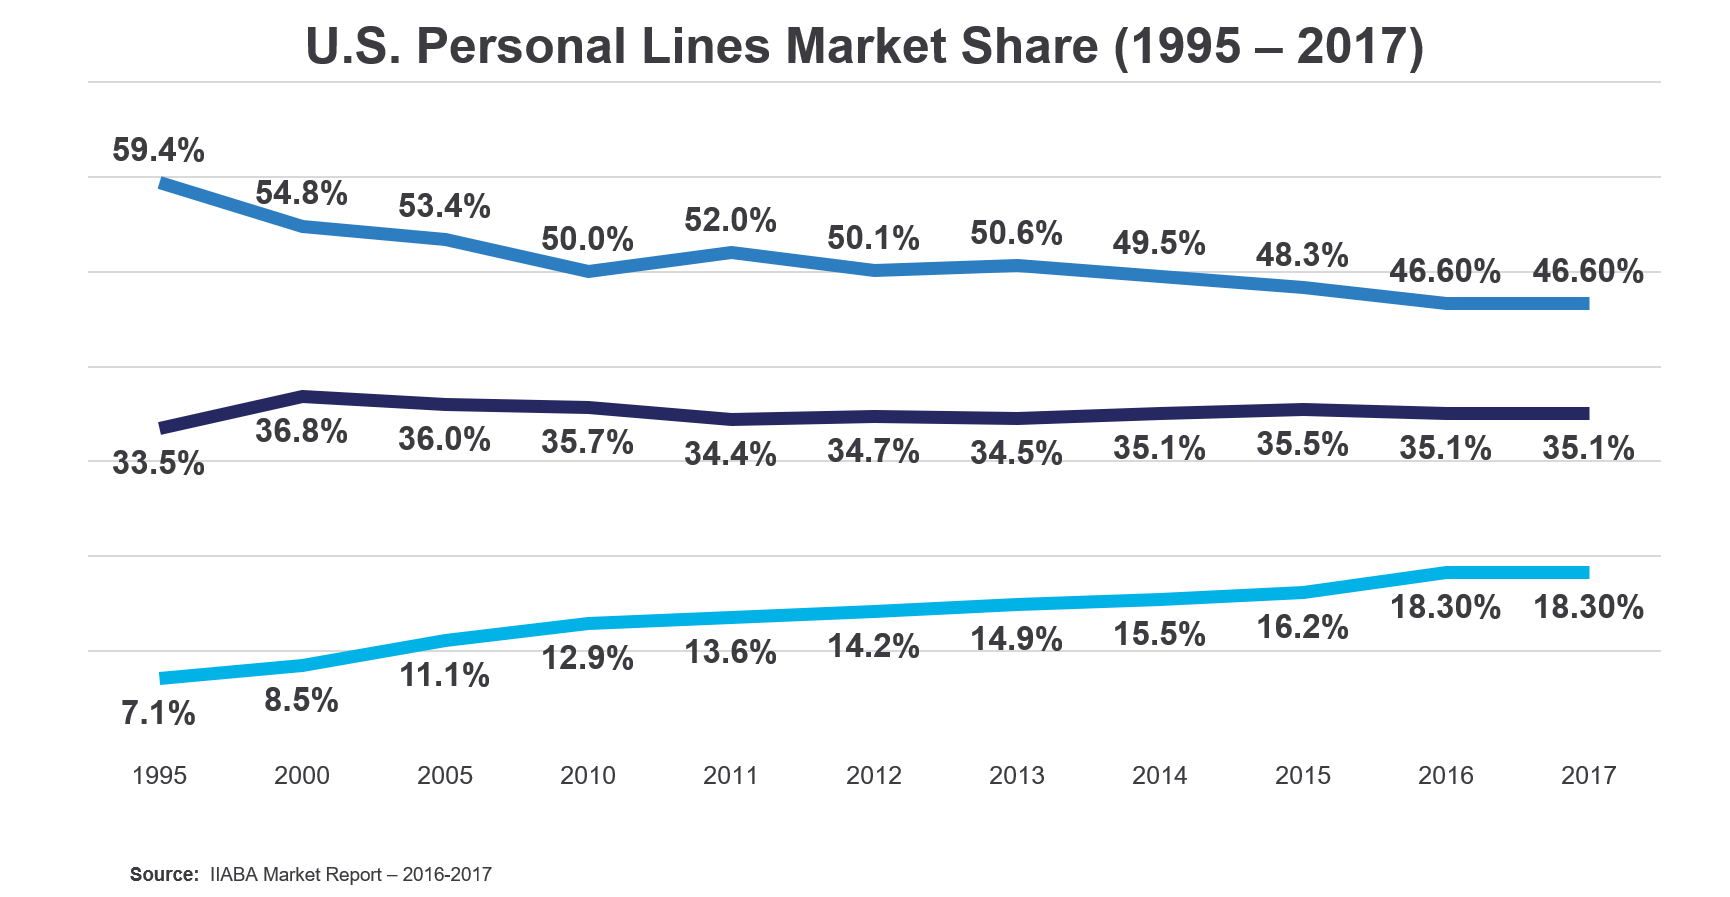 U.S. Personal Lines Market Share (1995 – 2017)